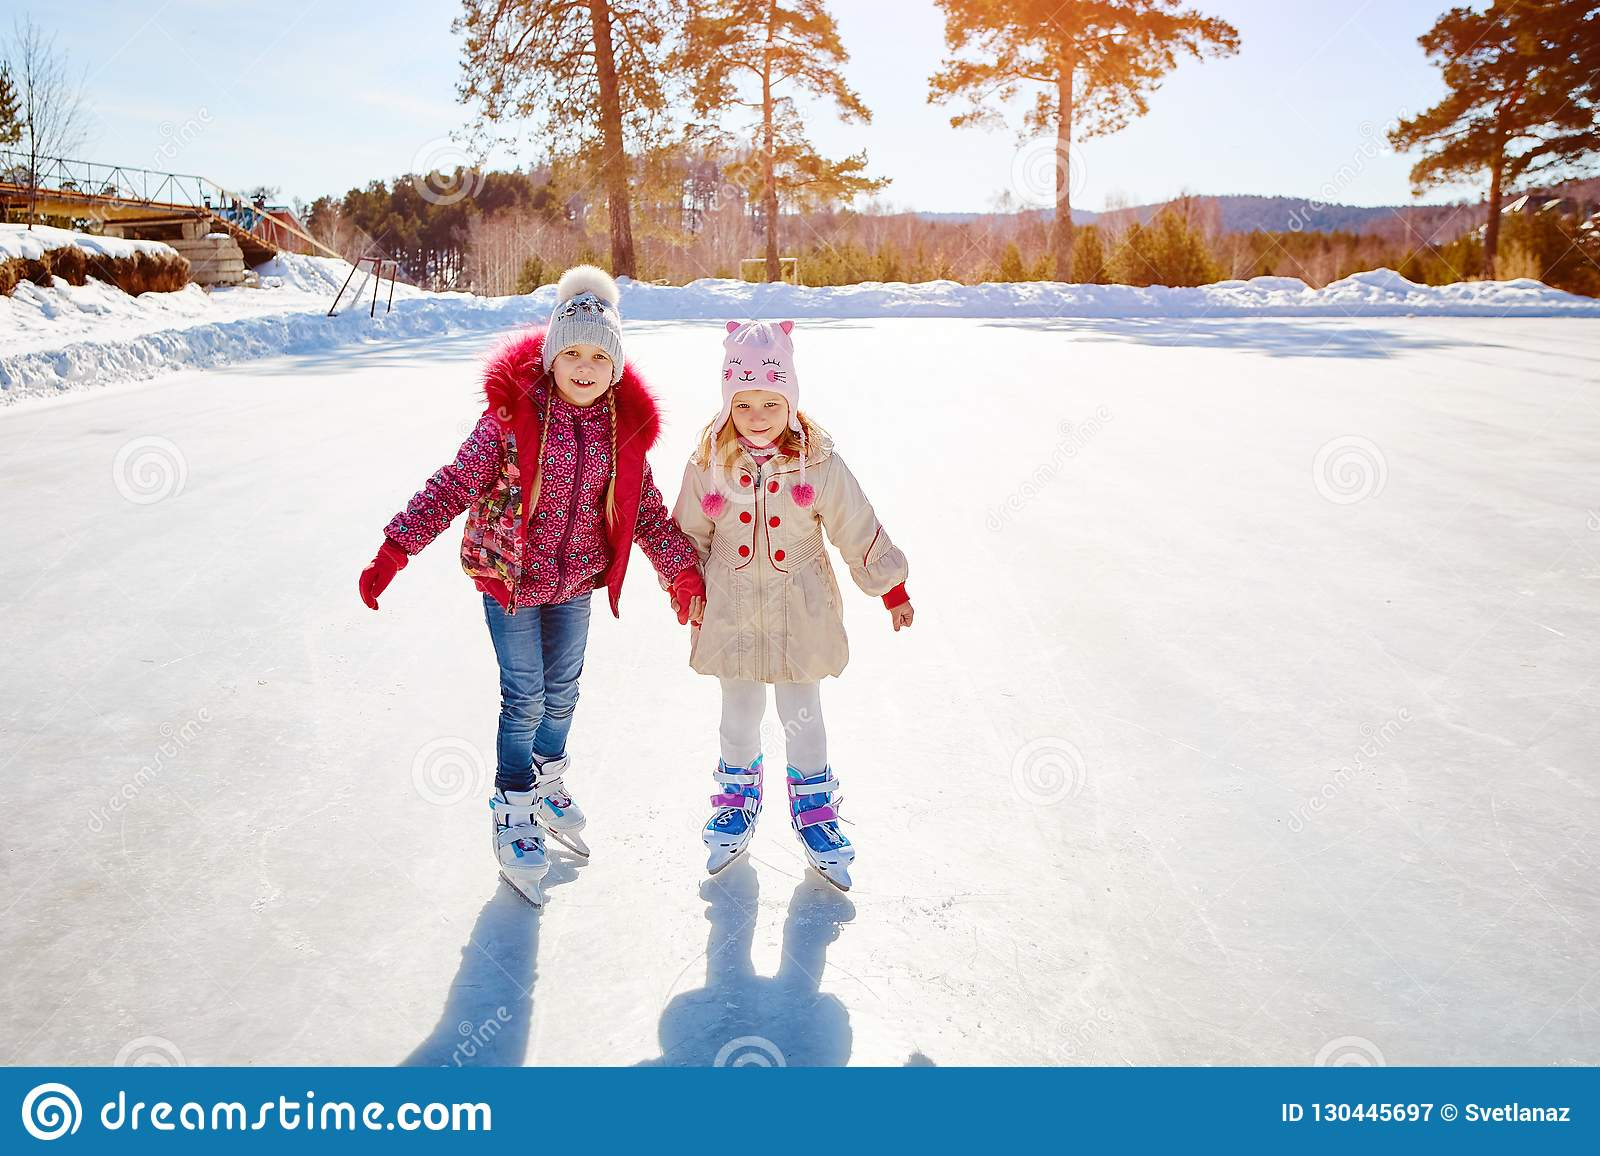 Happy children ice skating on an ice rink outdoors. Sport and a healthy lifestyle. Funny kids, they are sisters and girlfriends